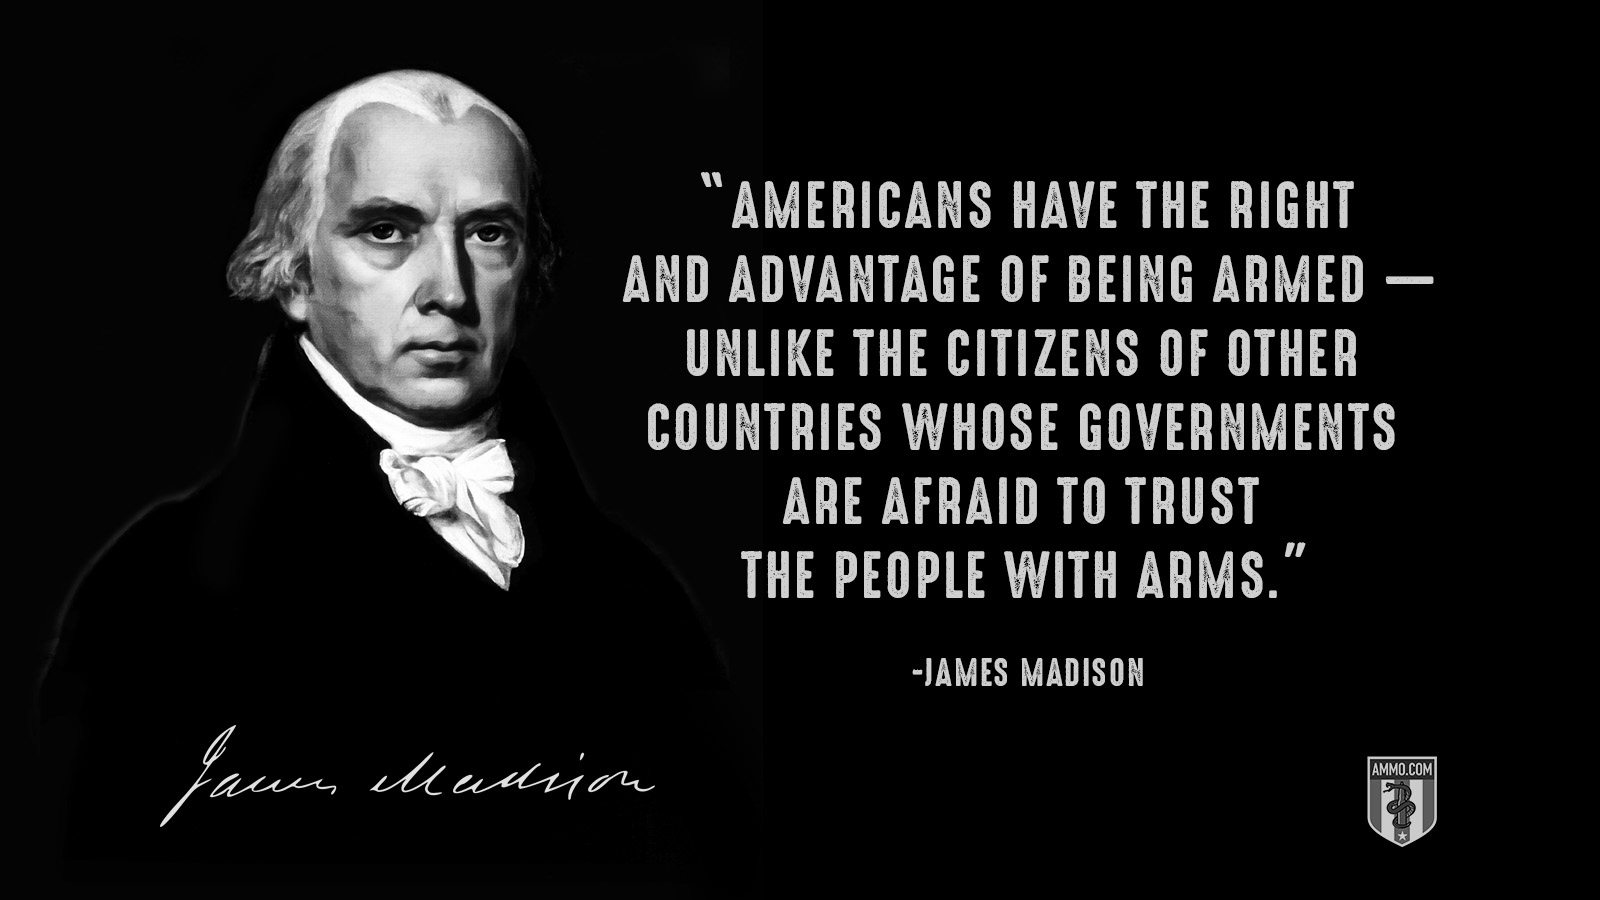 """Americans have the right and advantage of being armed ― unlike the citizens of other countries whose governments are afraid to trust the people with arms."" - James Madison"